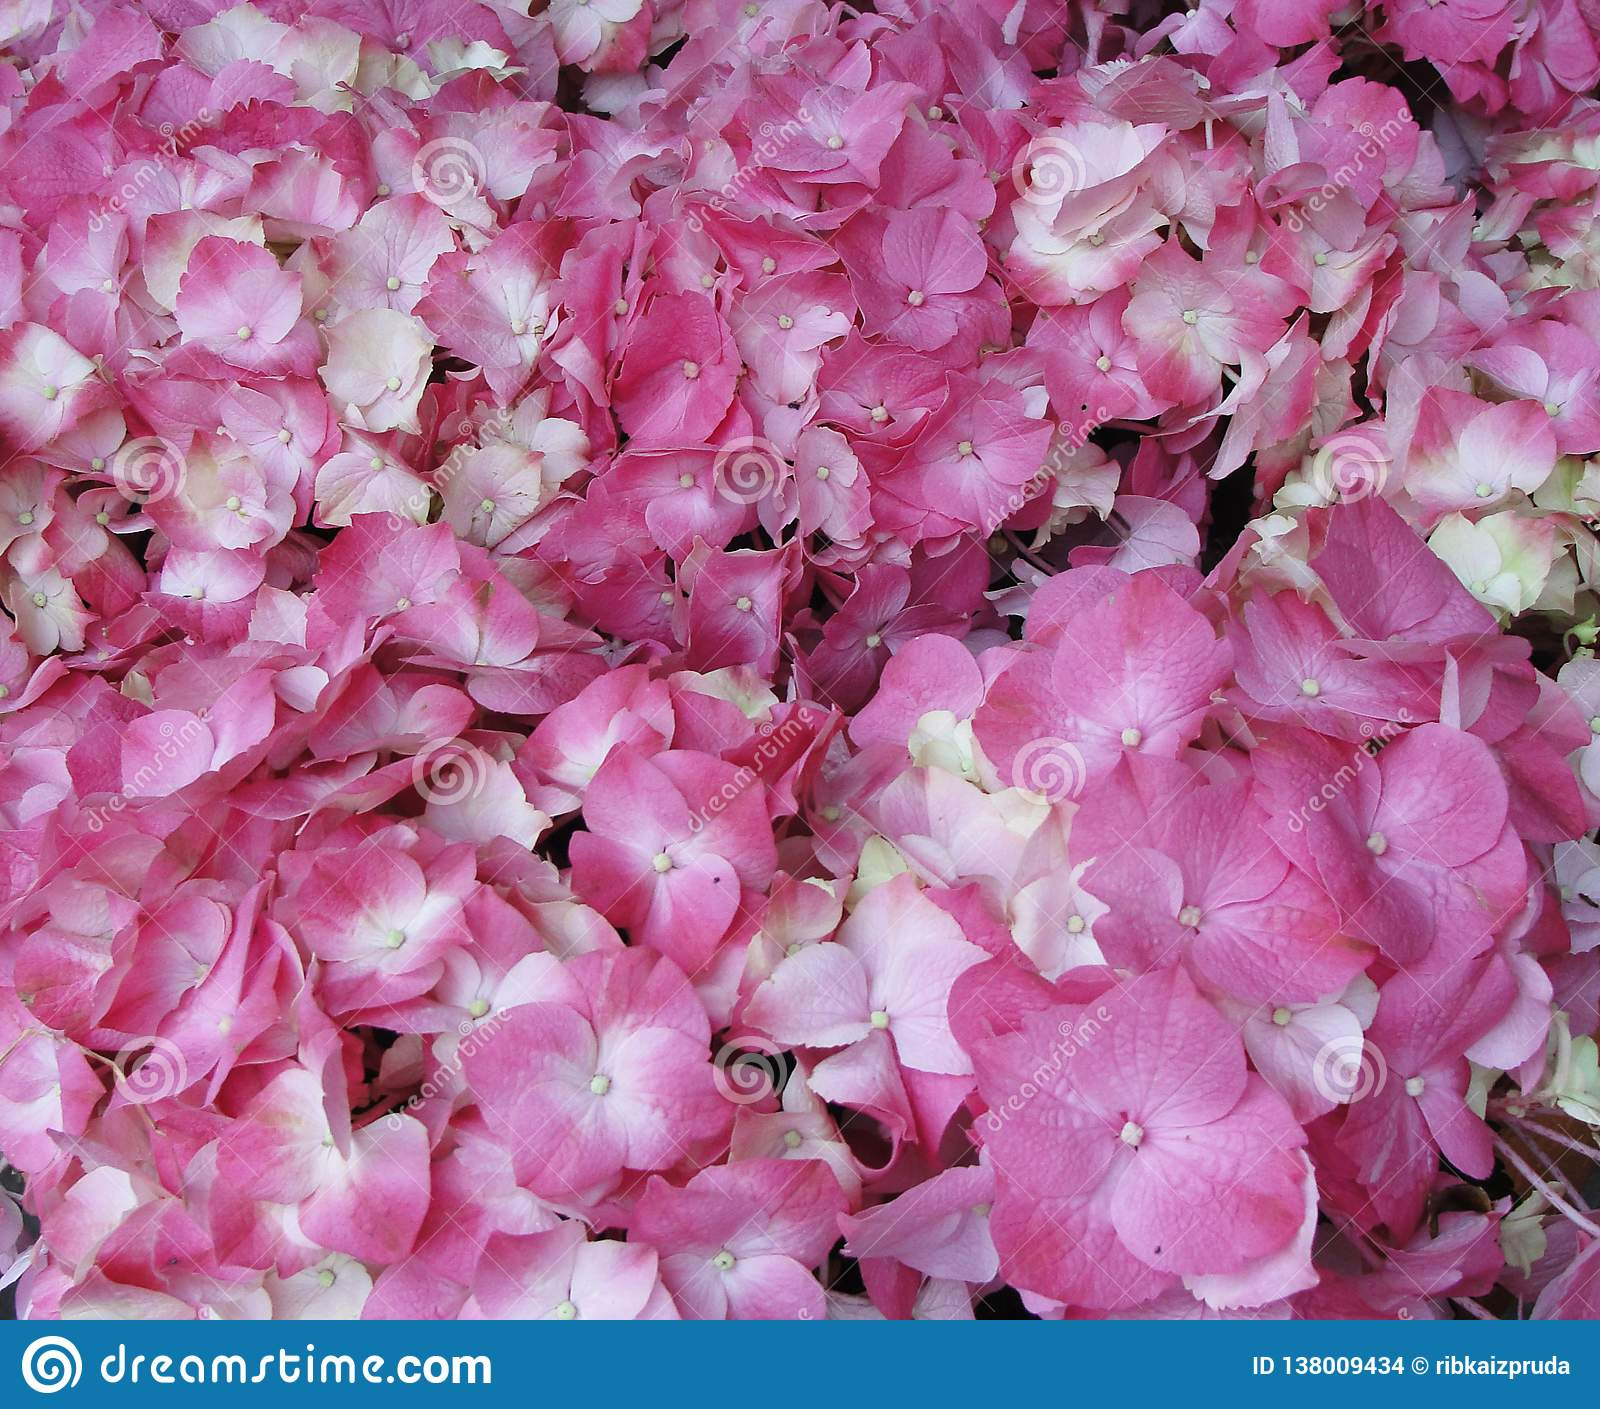 Pink Hydrangea Hortensia flower in color variations ranging from light pink to fuchsia color